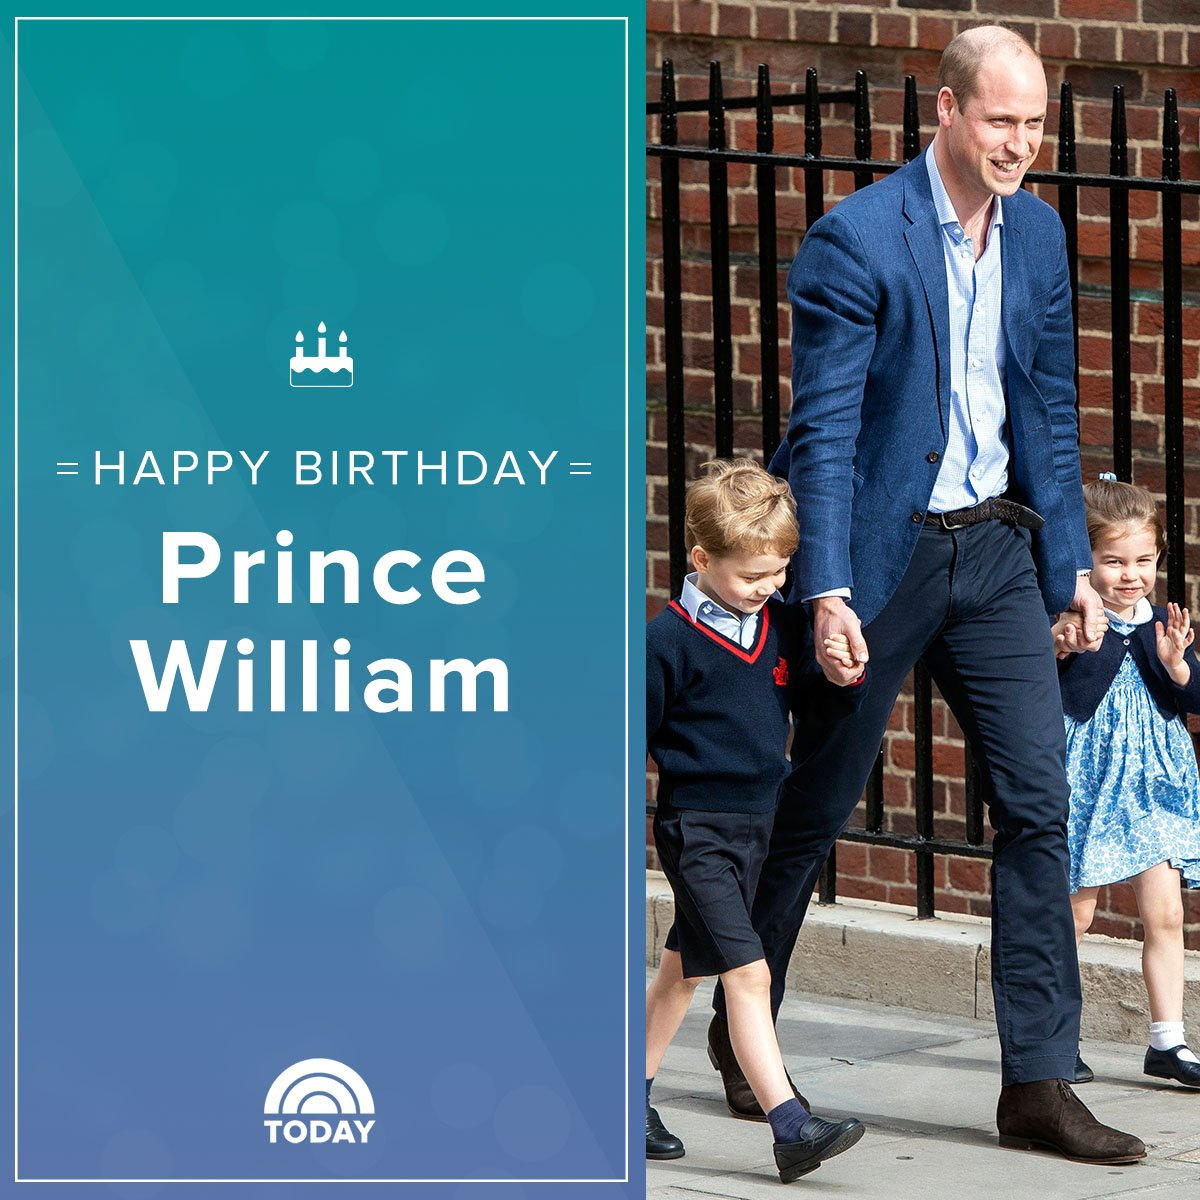 Happy birthday, Prince William!